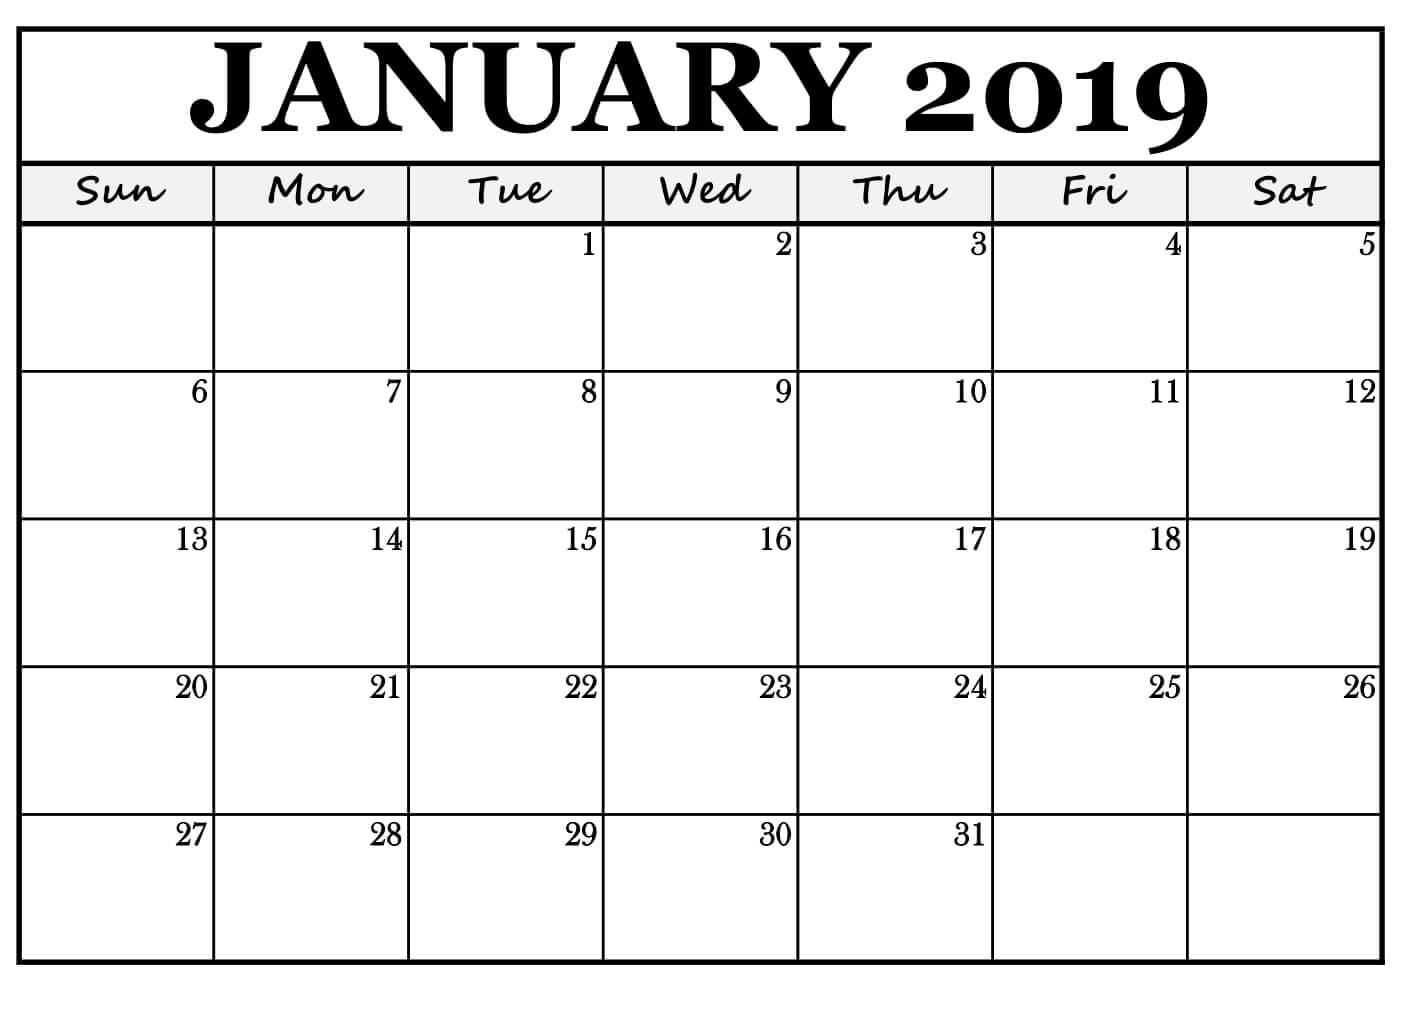 Printable January 2019 Calendar For Office Excel